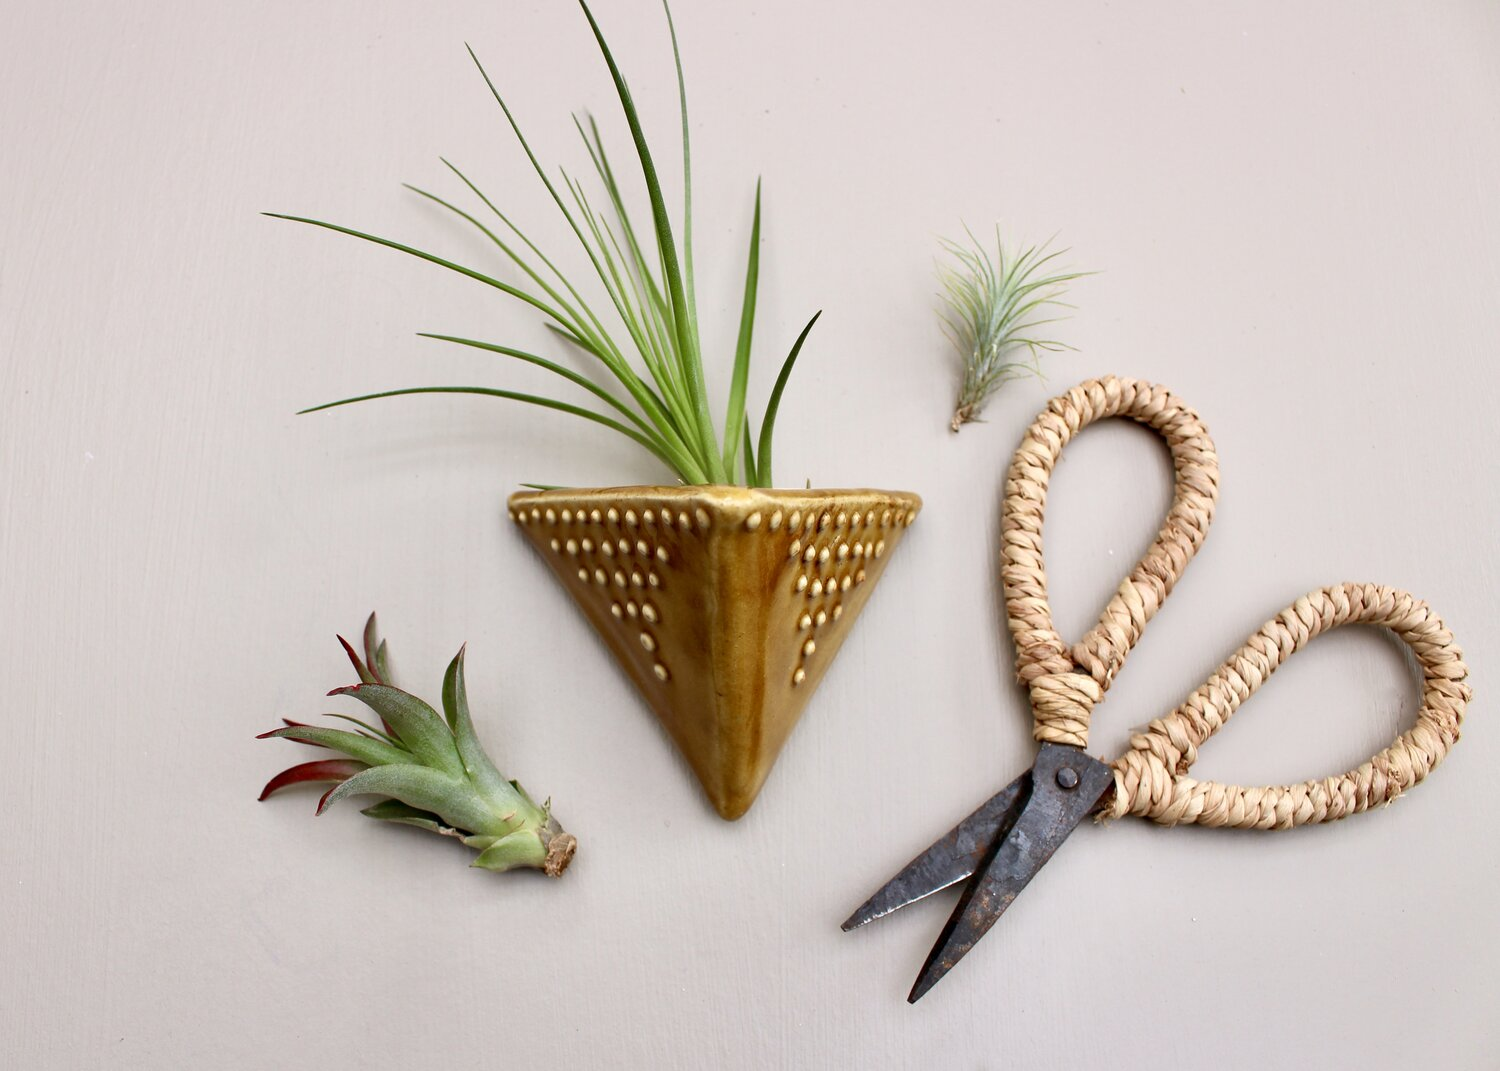 Small Gift Hand Made Ceramic Wall Pocket Free shipping. Unique Airplant Air Plant Holder